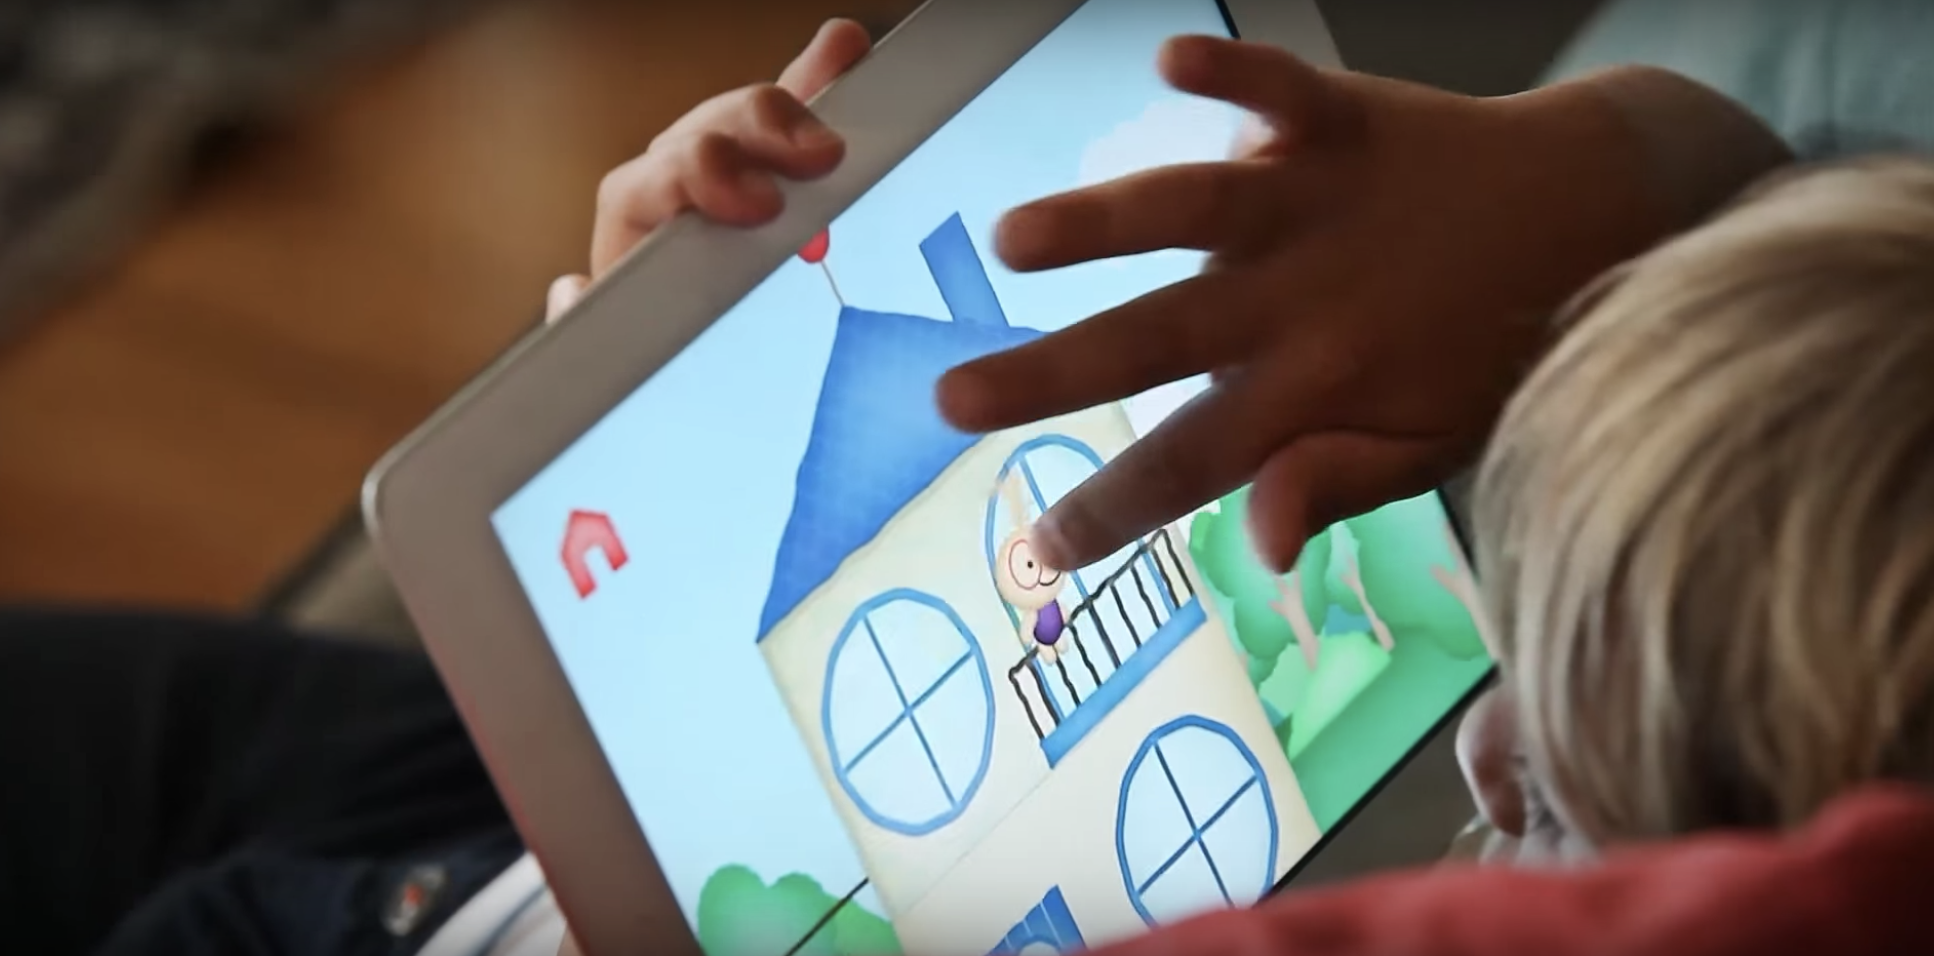 Designing apps for young kids - UX Collective